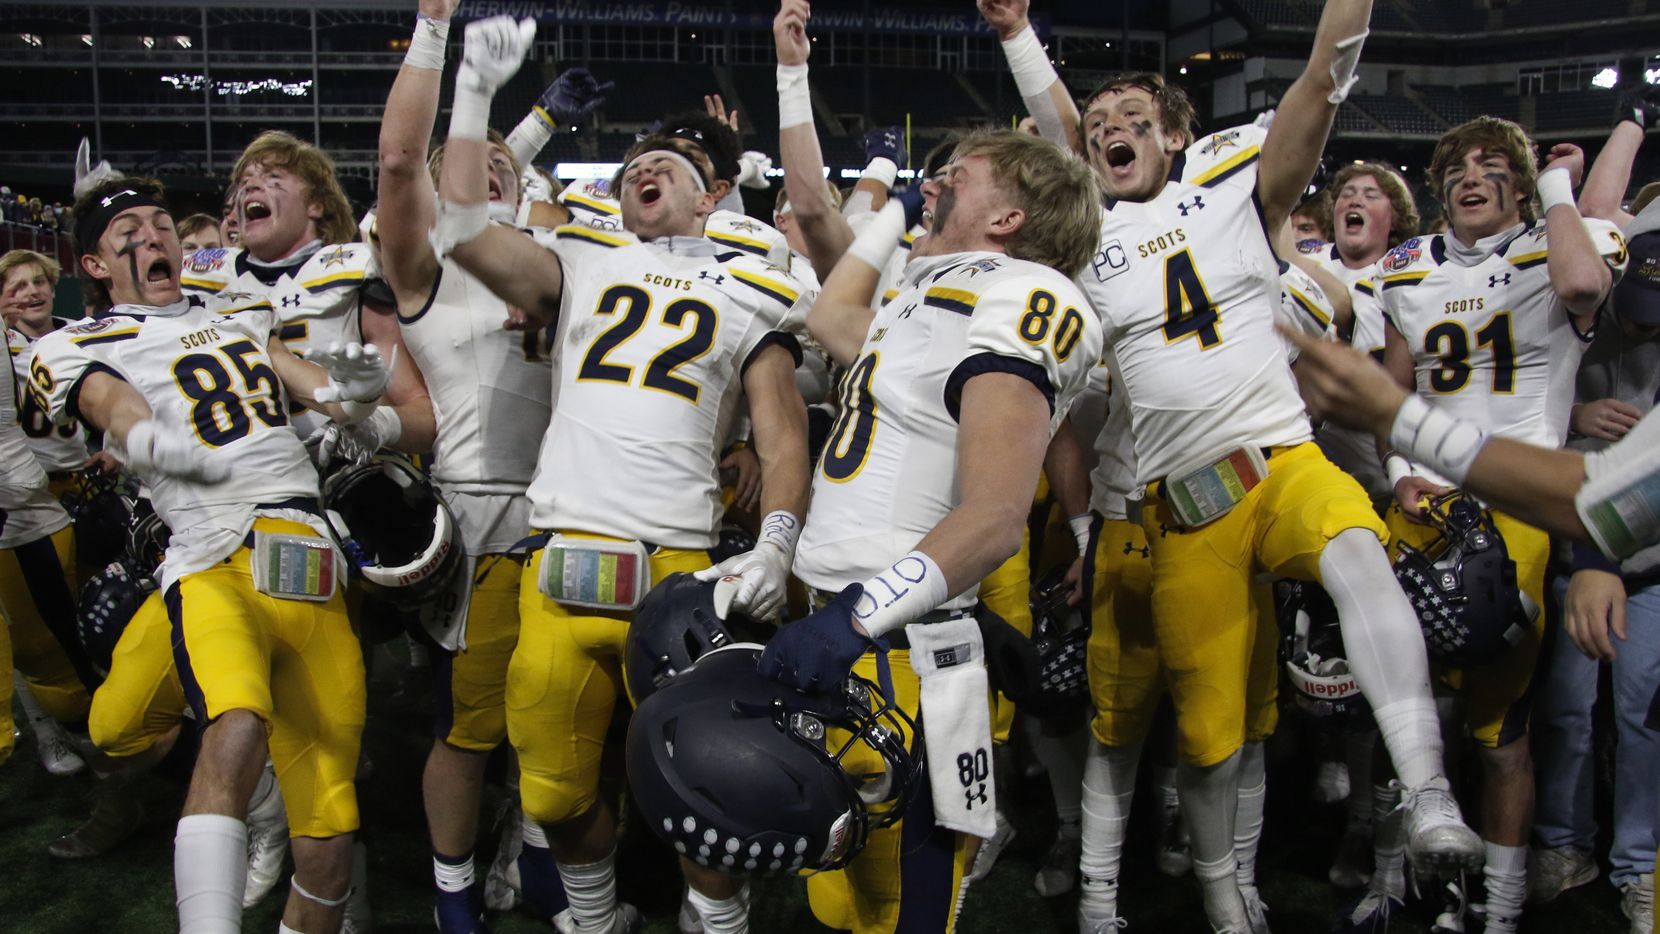 Highland Park Scots players celebrate with great intensity following their 30-20 victory over Frisco Lone Star to advance. The two teams played their Class 5A Division l Region ll semifinal football playoff game held at Globe Life Park in Arlington on December 24, 2020. (Steve Hamm/ Special Contributor)